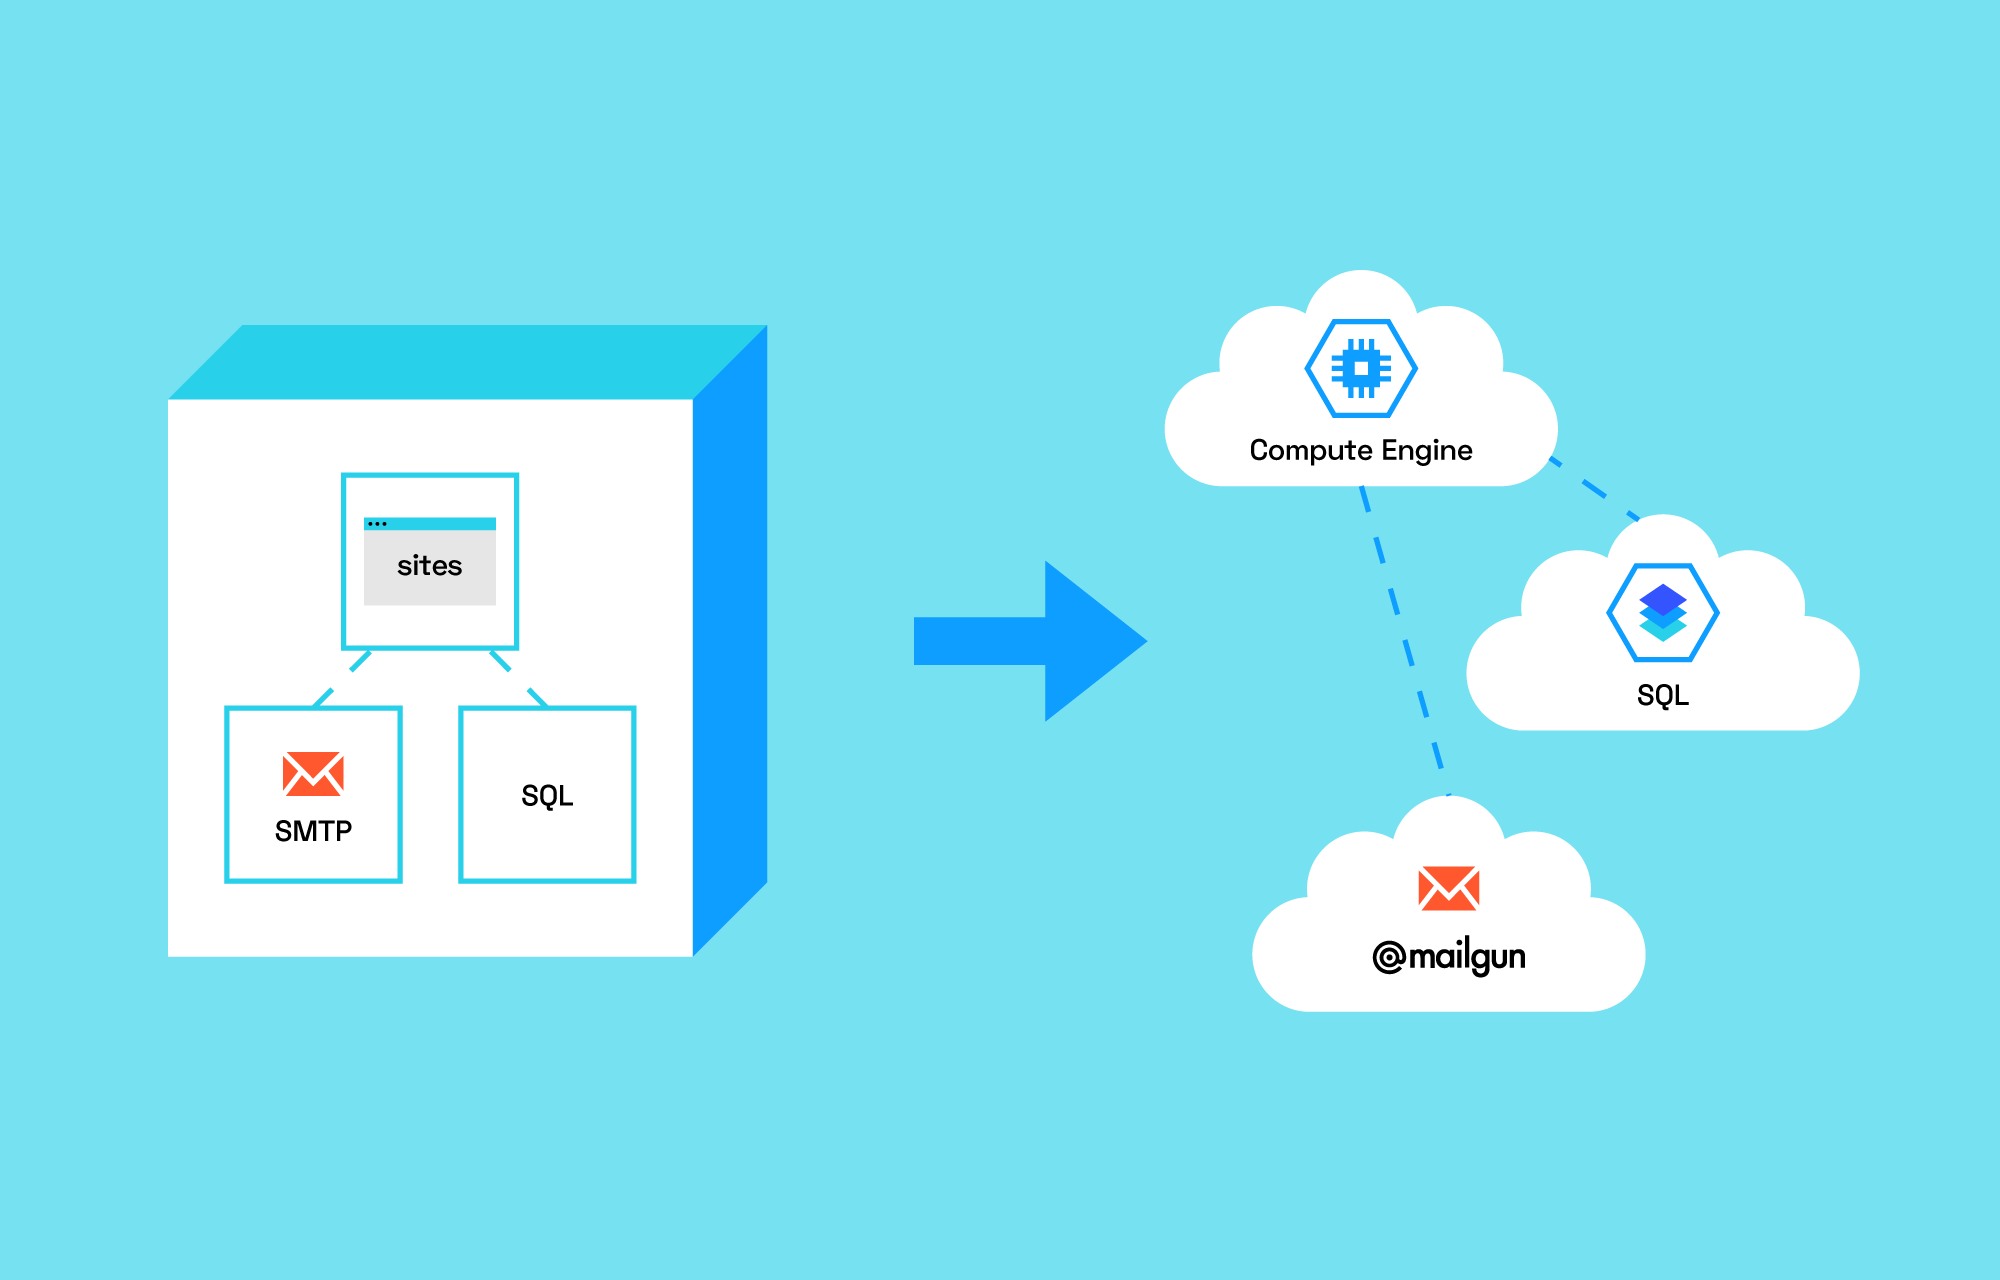 Web apps inside a monolithic shape and an arrow pointing towards the apps in cloud shapes.